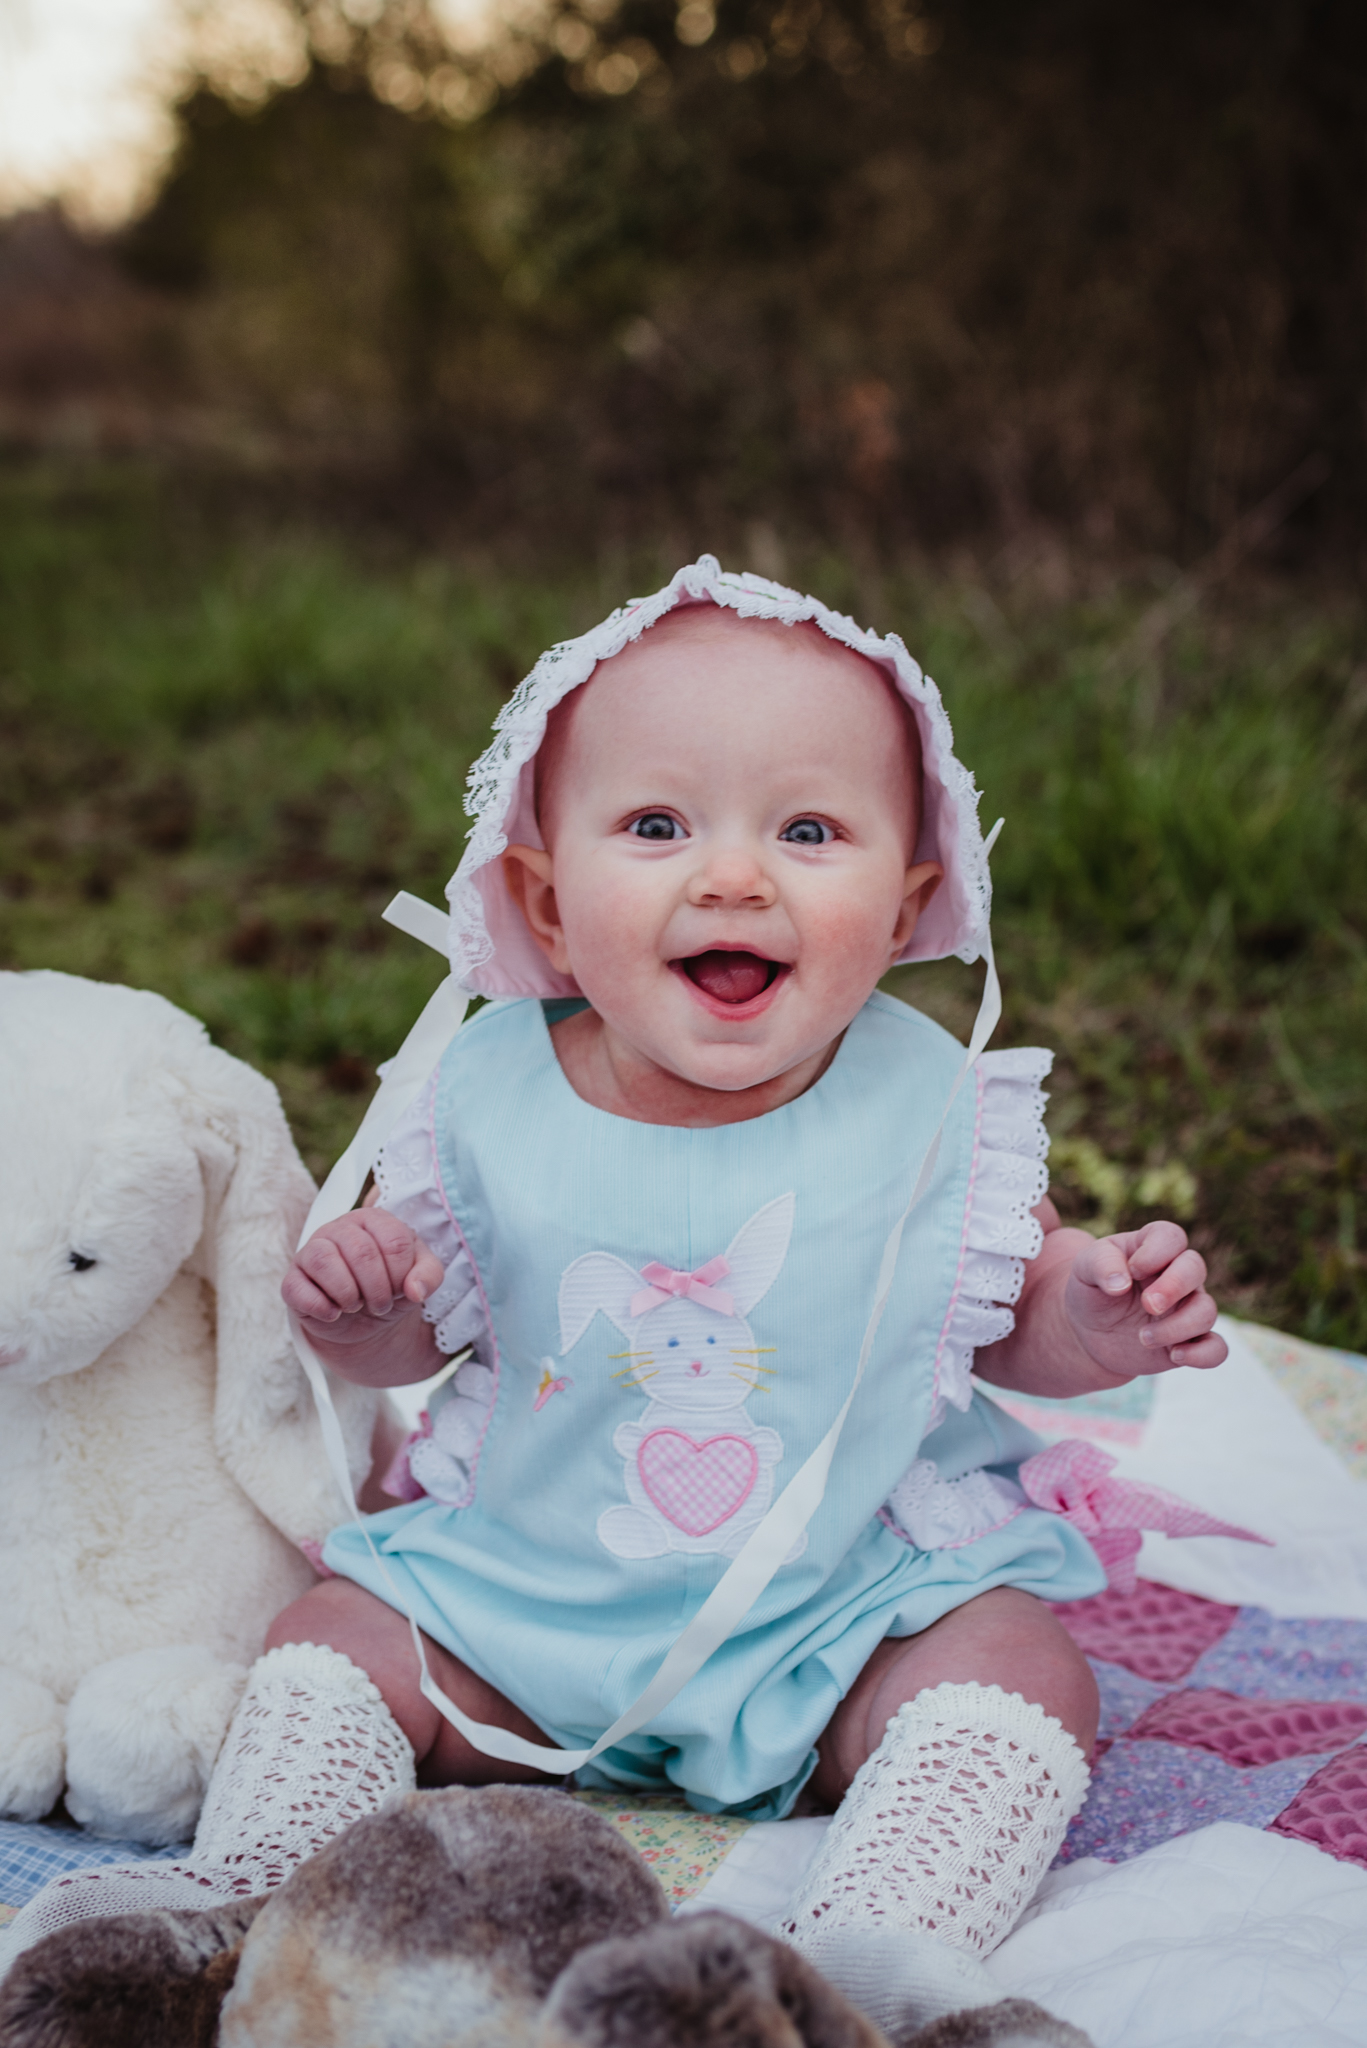 A 9-month old sits in her easter bonnet and laughs during their family photos with Rose Trail Images at Horseshoe Farm Park in Wake Forest, NC.